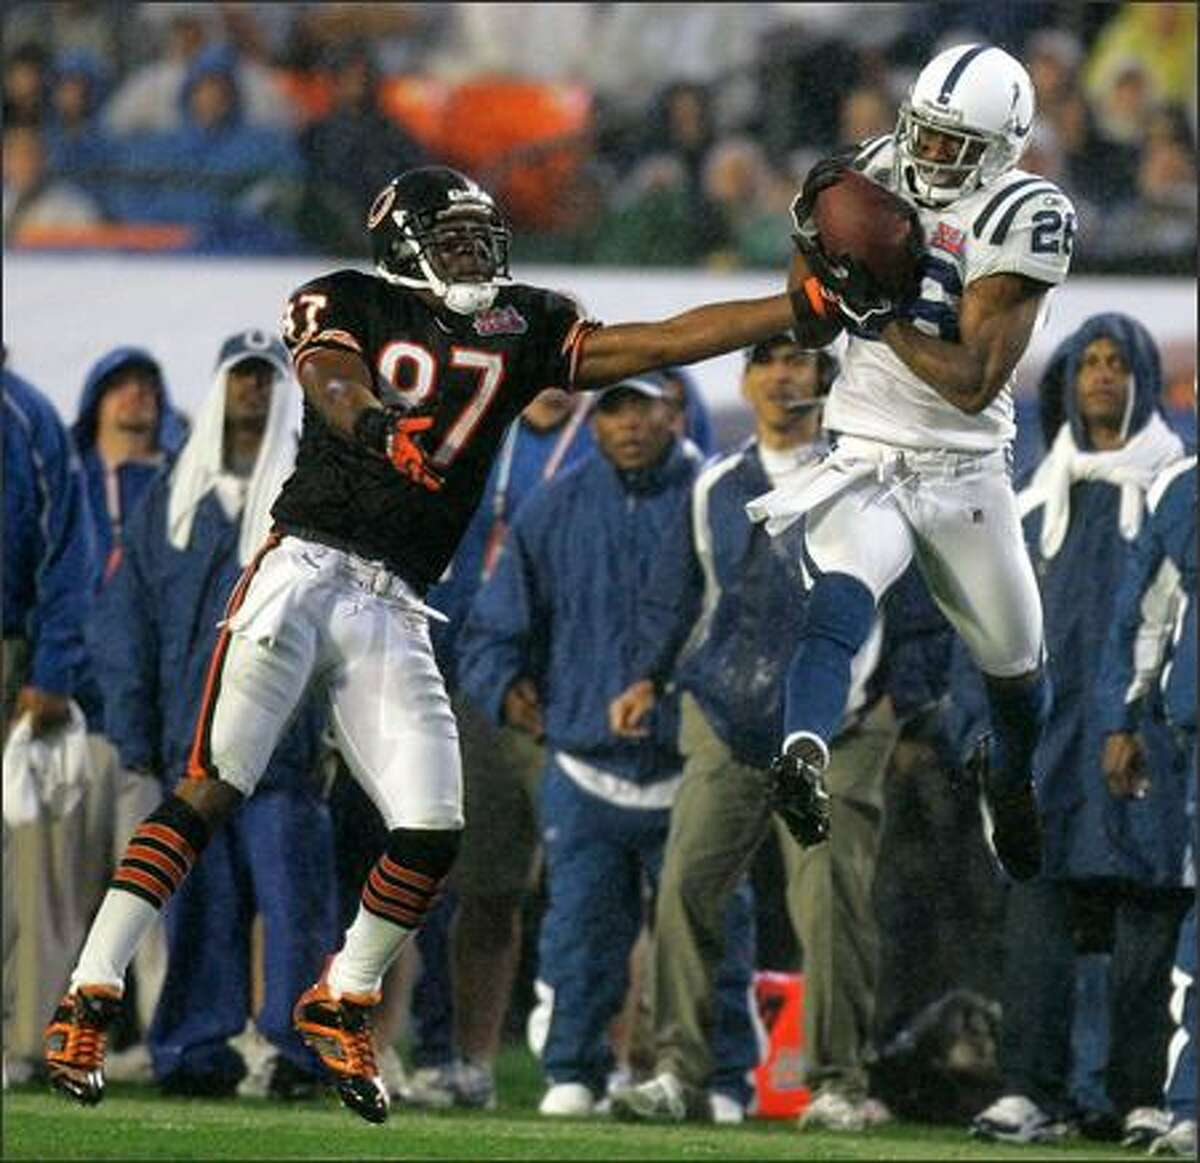 Indianapolis Colts cornerback Kelvin Hayden (26) intercepts a pass intended for Chicago Bears wide receiver Muhsin Muhammad (87) during the fourth quarter of Super Bowl XLI. (AP Photo/Jeff Roberson)